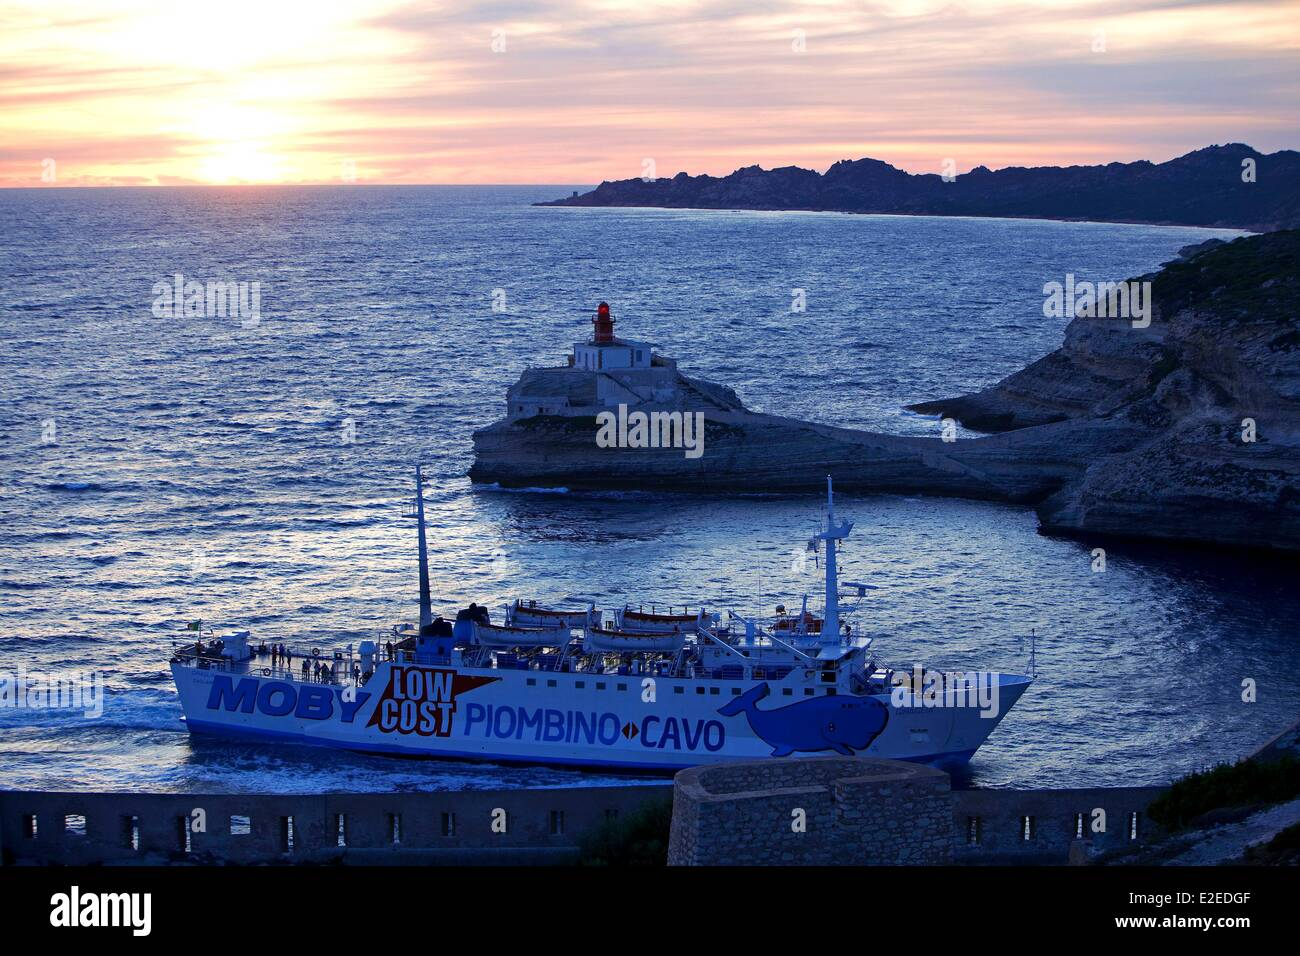 France, Corse du Sud, Bonifacio, flagship Madonetta, ferry from Sardinia, Cap de Feno in the background - Stock Image